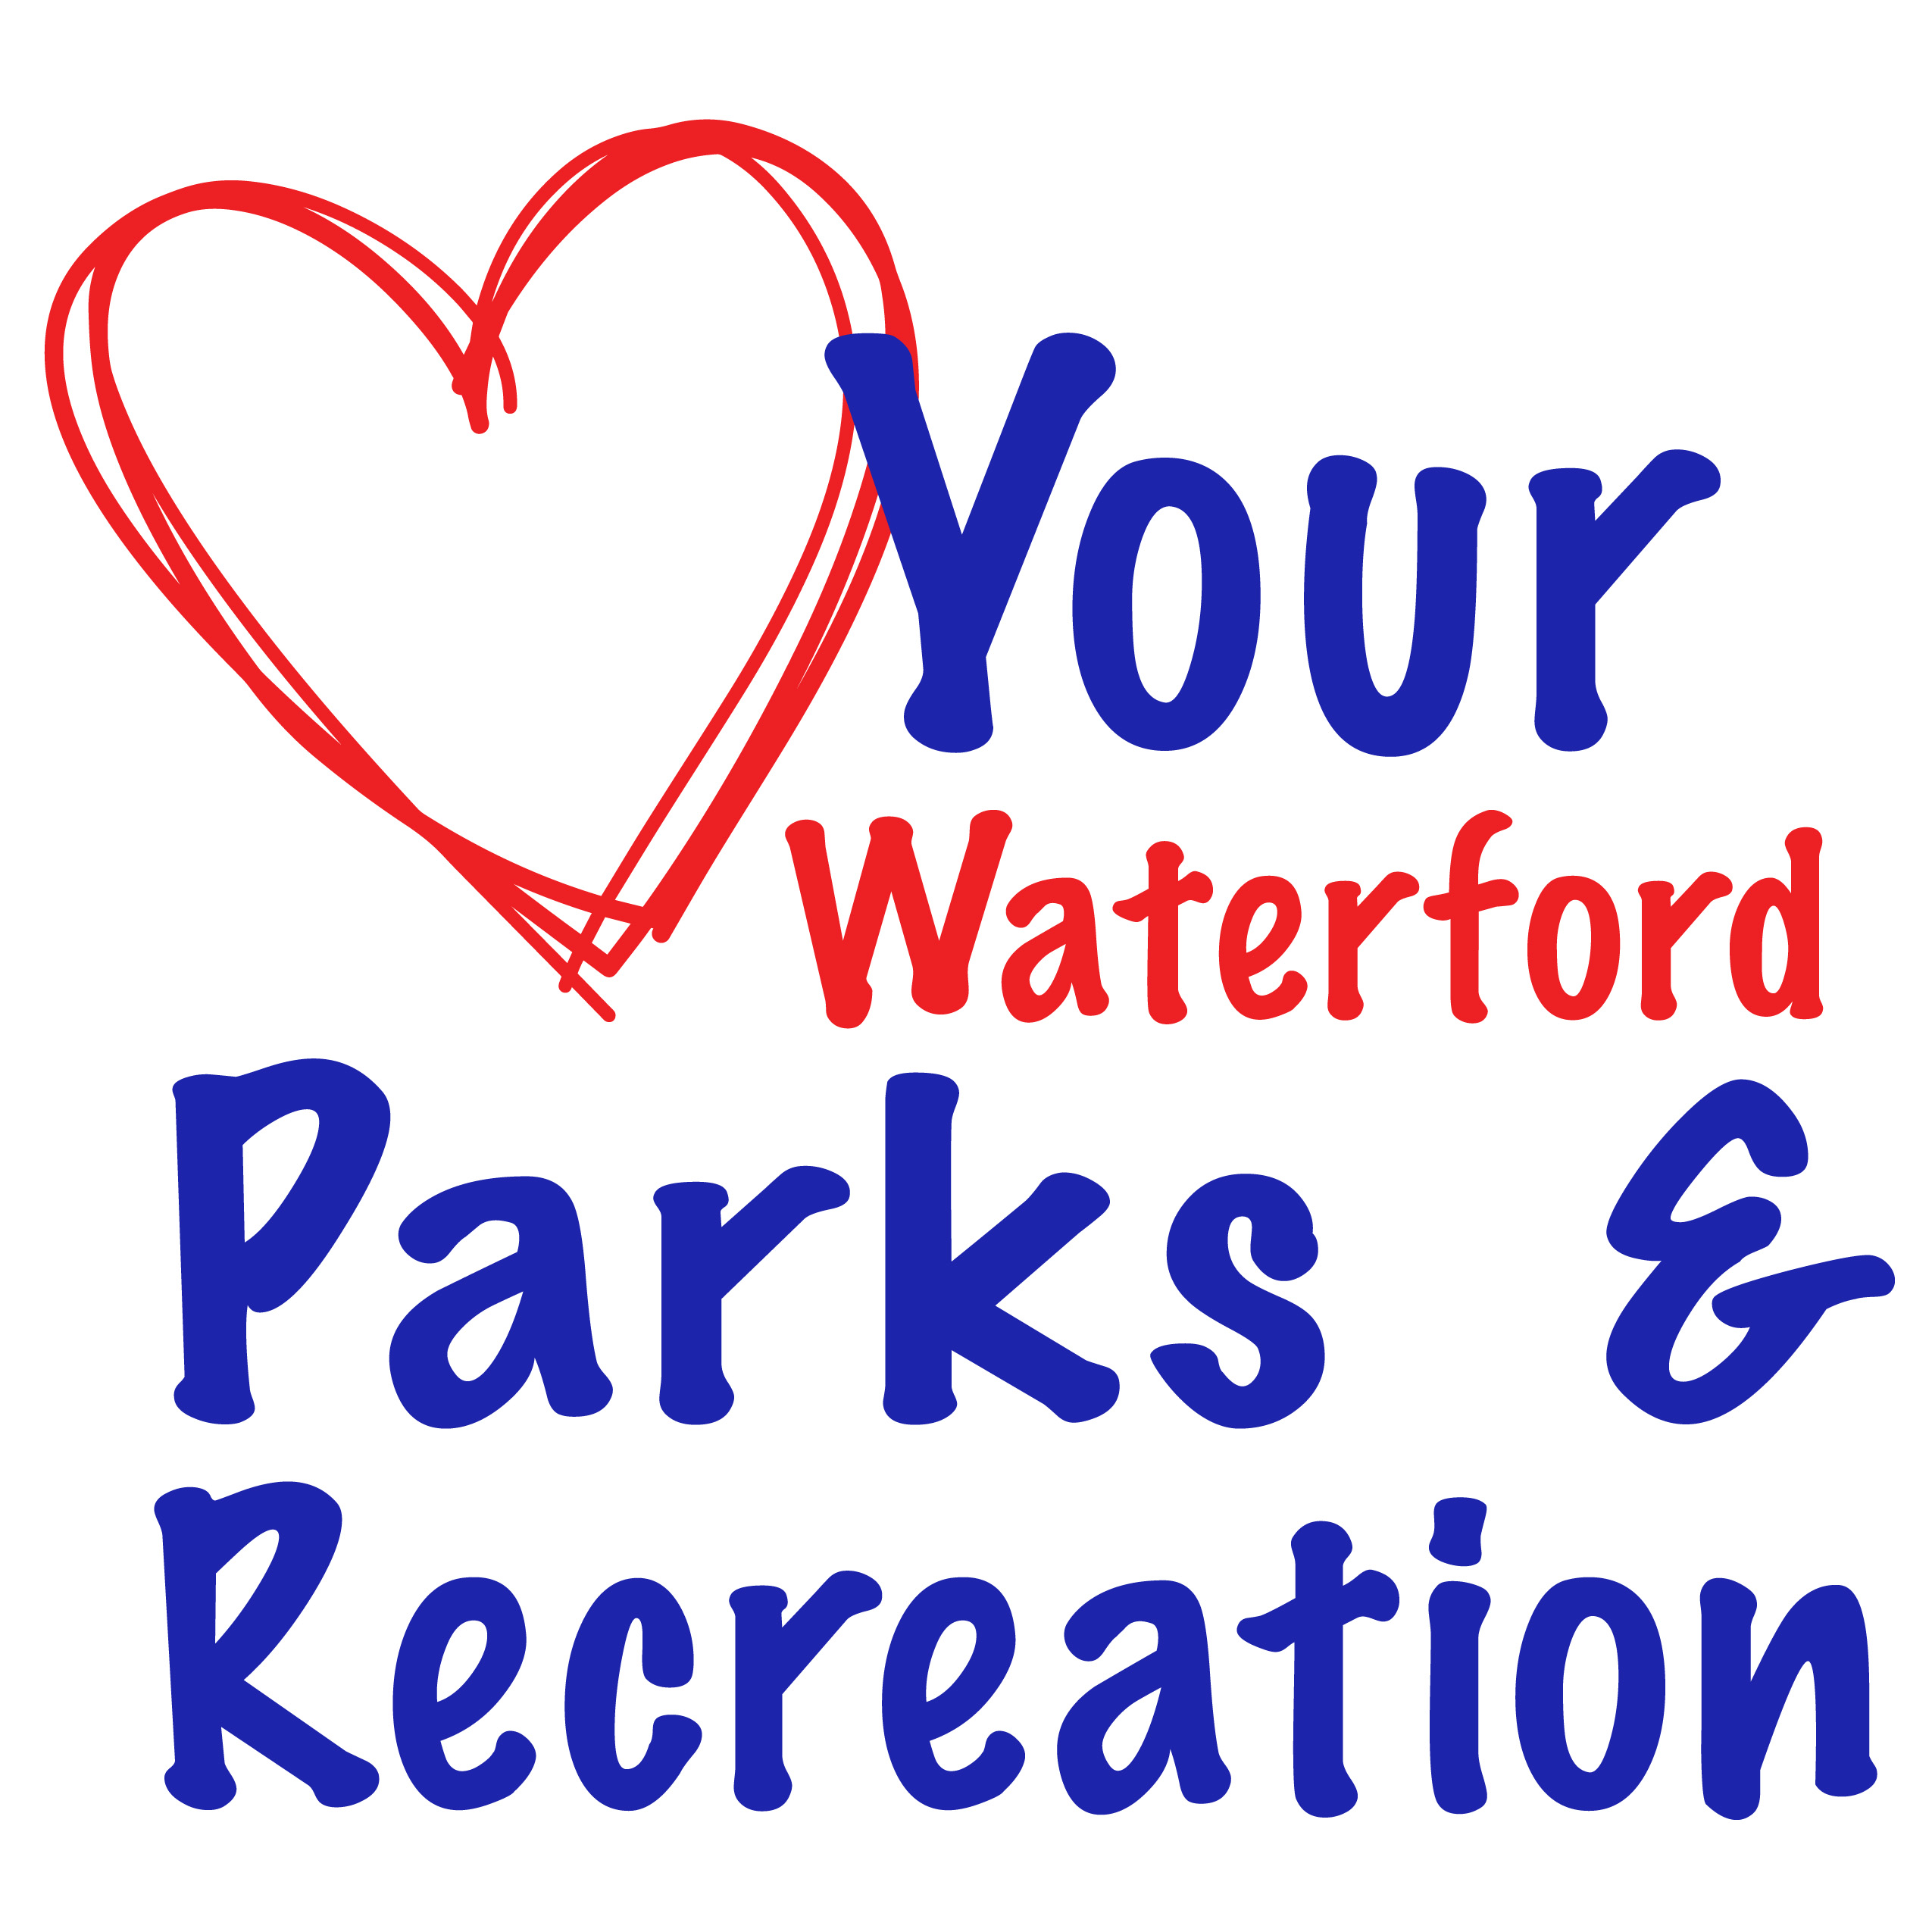 HeartYourWaterford-logo